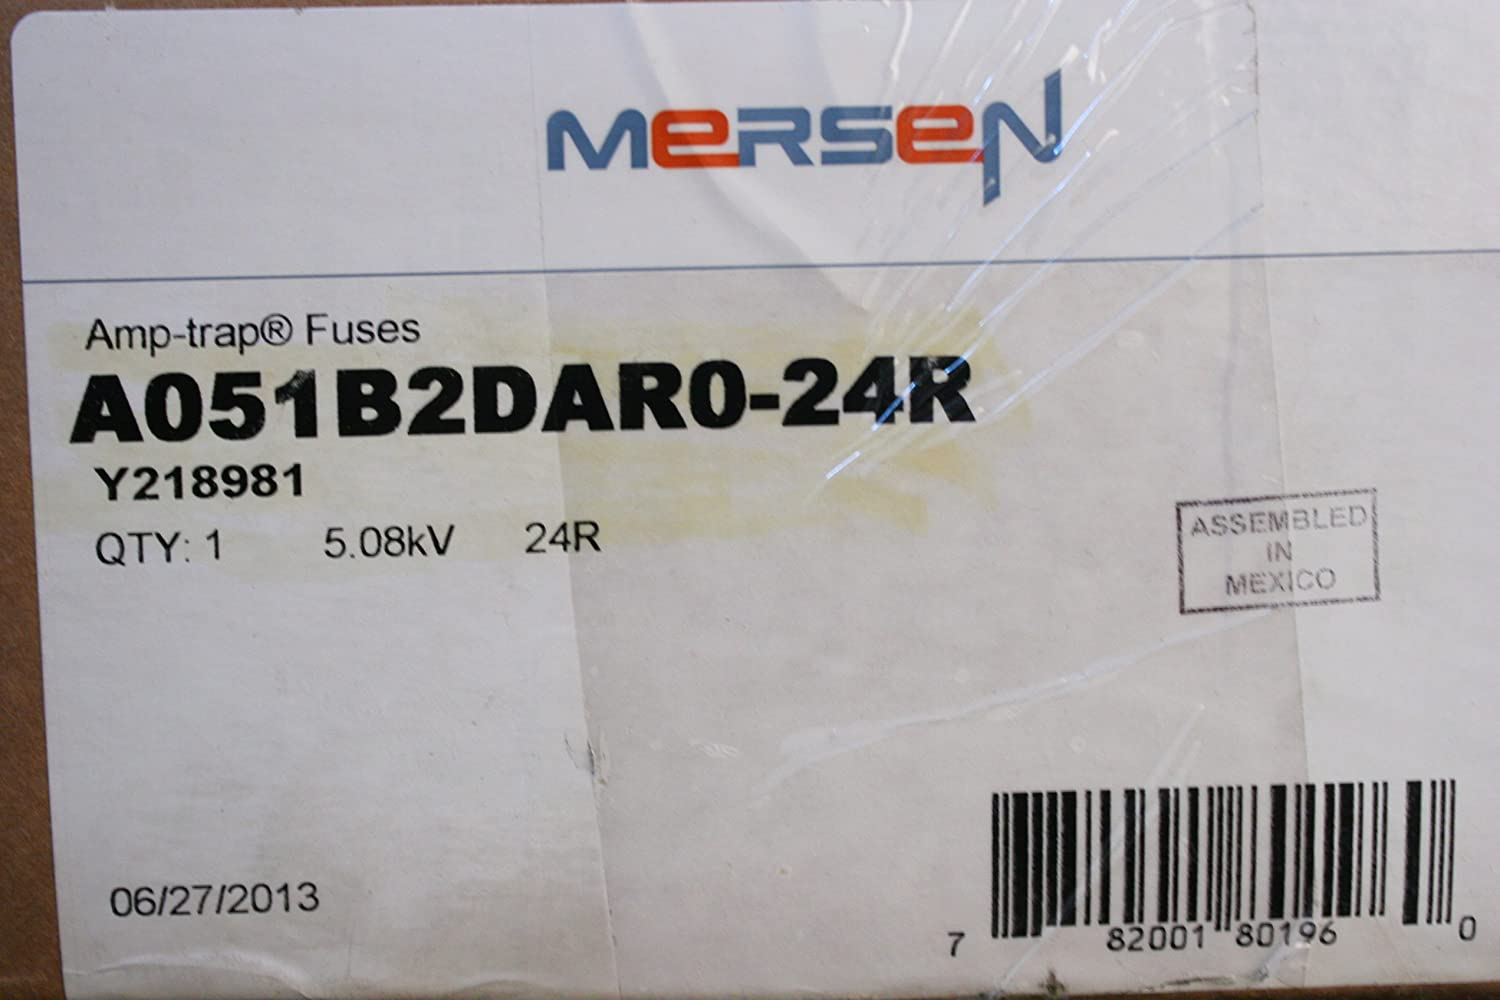 Mersen Amp-Trap Bolt-In Motor Protection R-Rated Fuse, 5.08kV AC, 65kA, 24 Ampere, 19-1/4